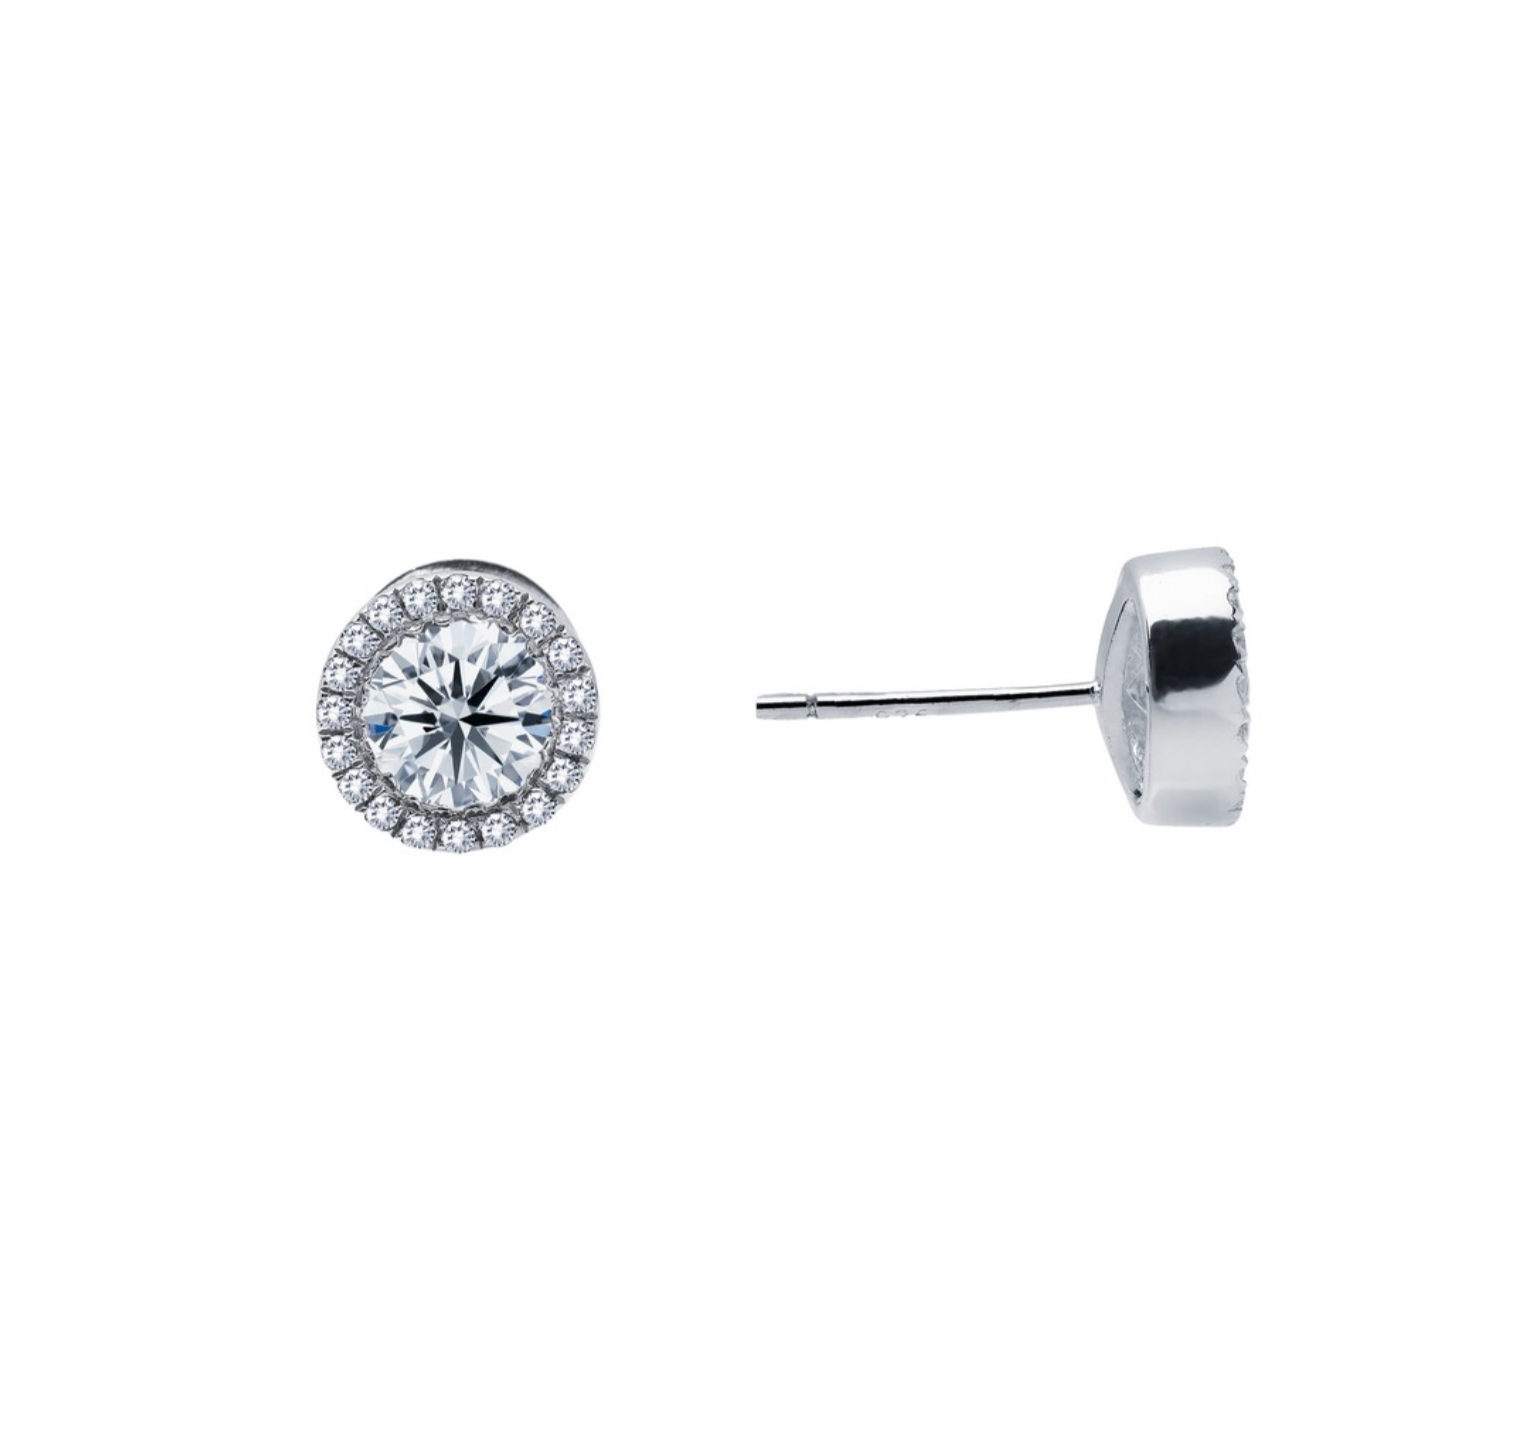 0.8 CT TW HALO STUD EARRING